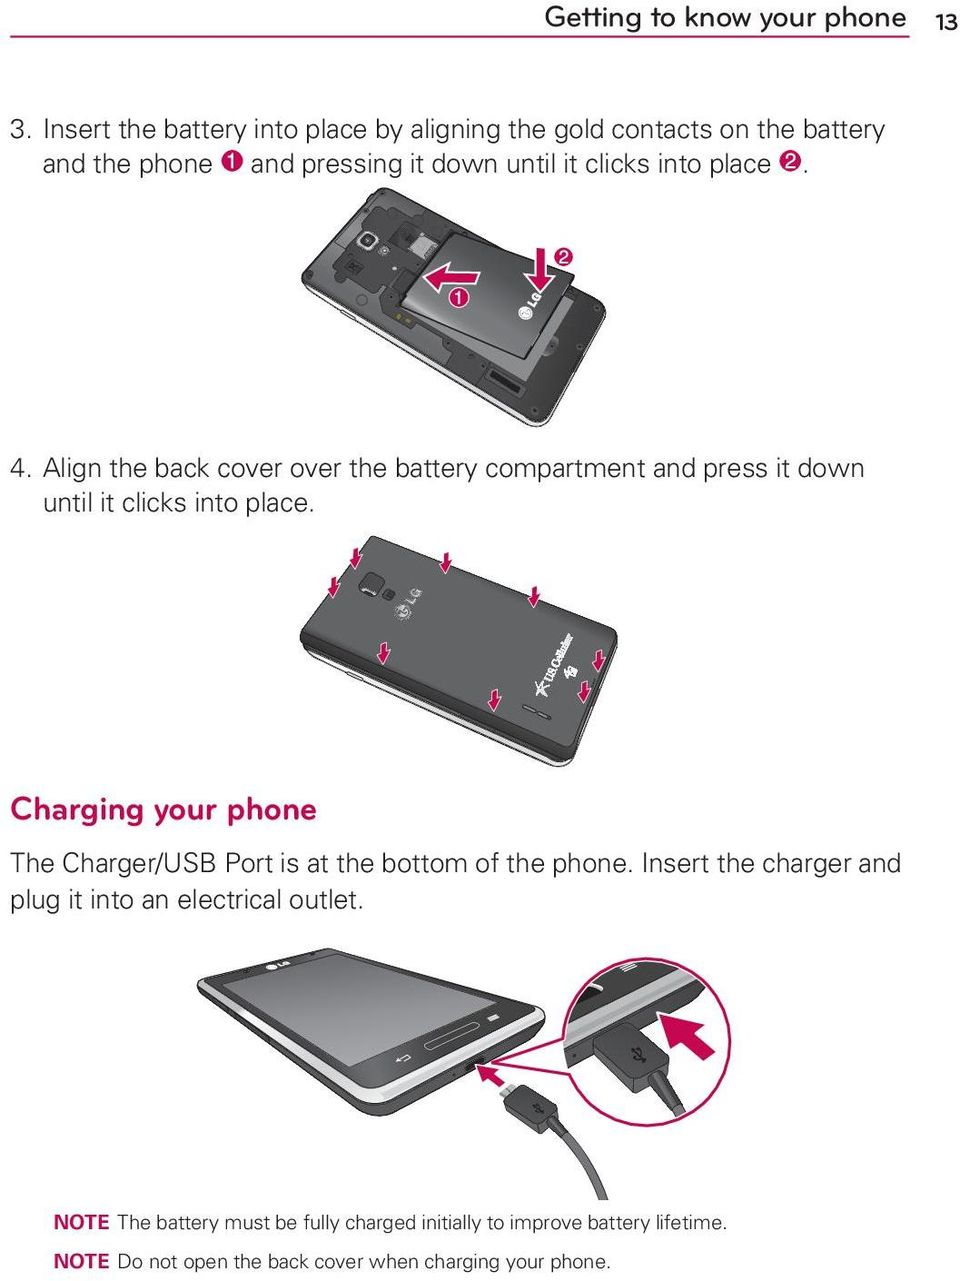 place. 4. Align the back cover over the battery compartment and press it down until it clicks into place.